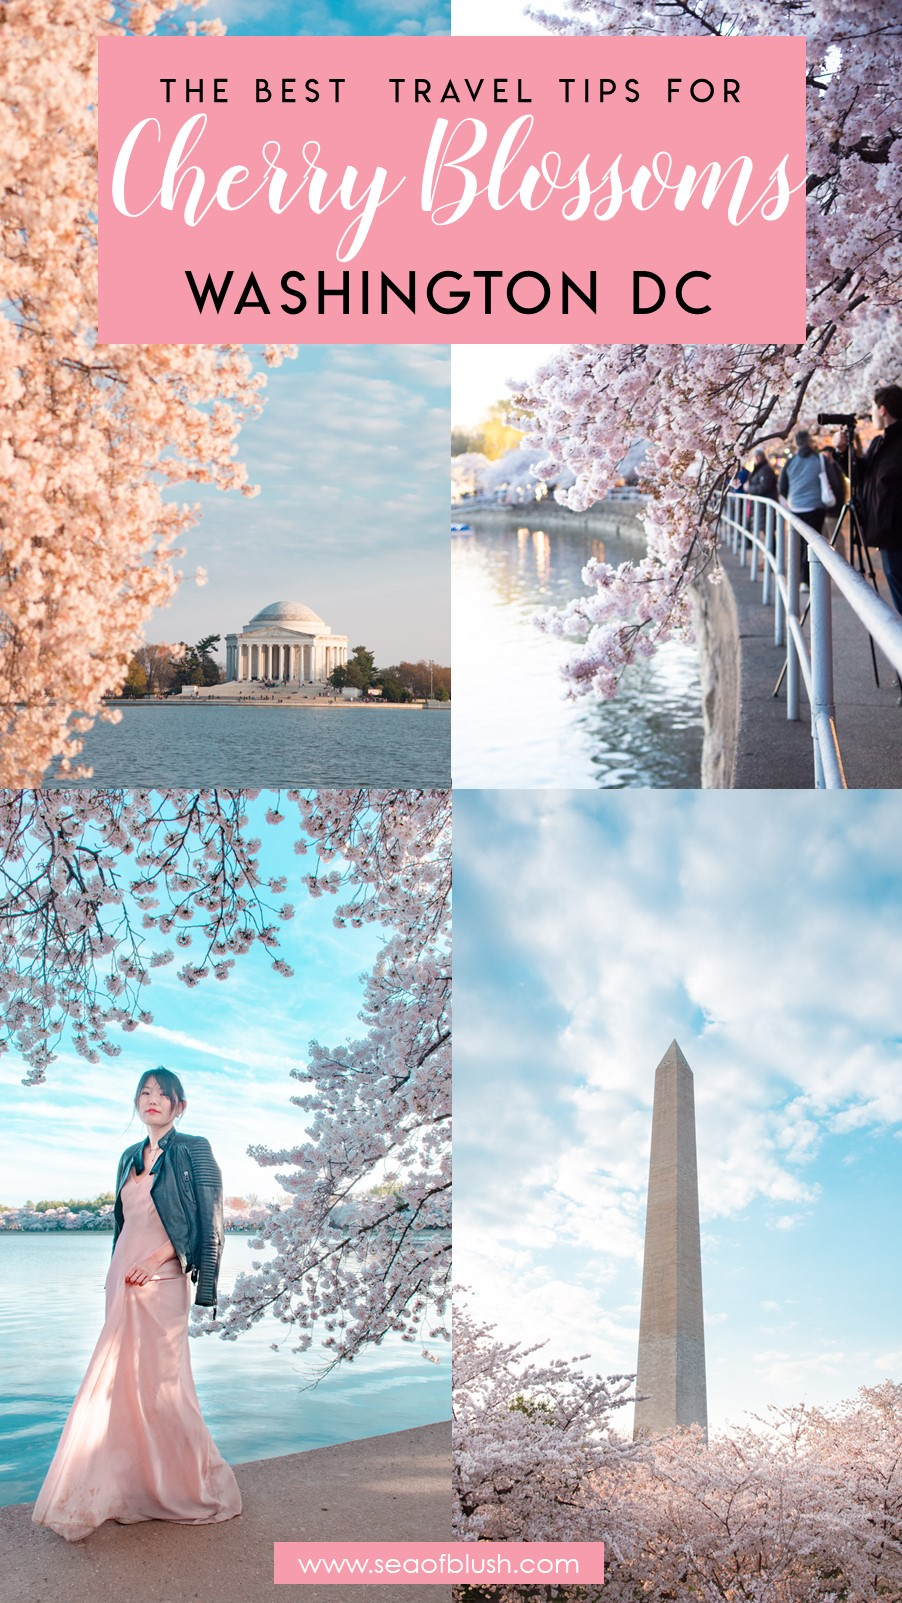 washington dc cherry blossom tips